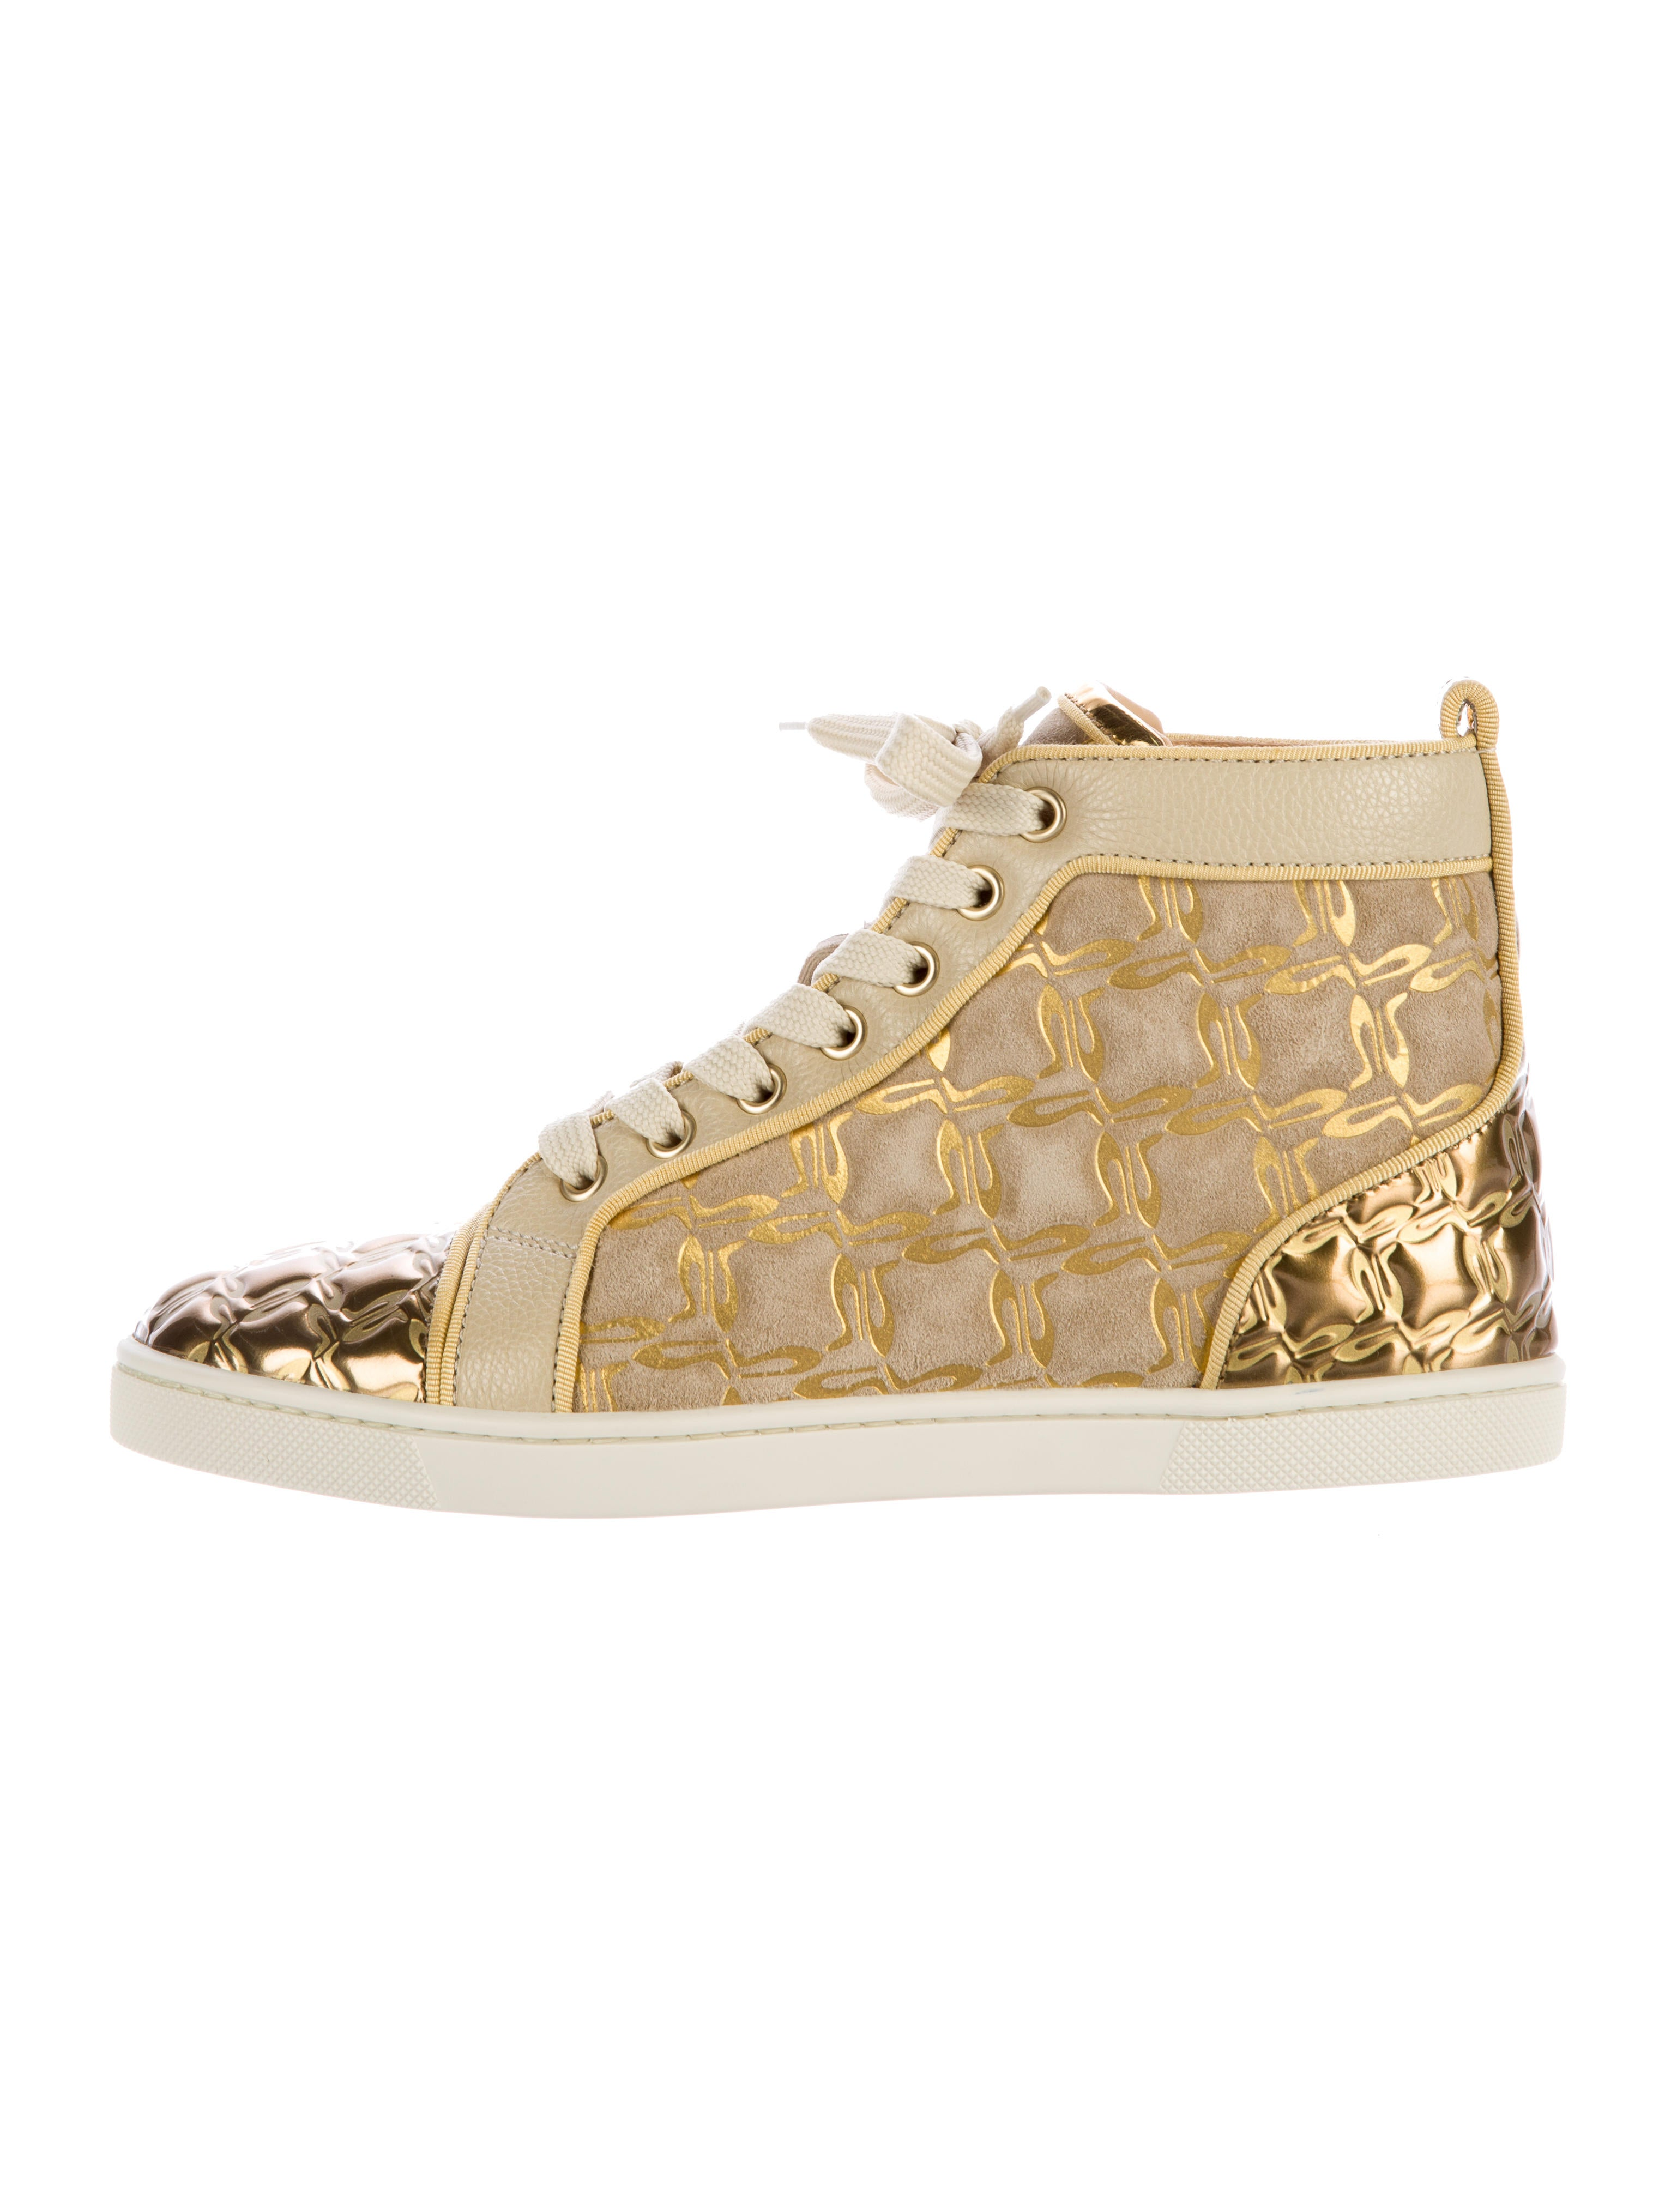 buy popular 3af9c 6caa9 Christian Louboutin Bip Bip High-Top Sneakers - Shoes ...